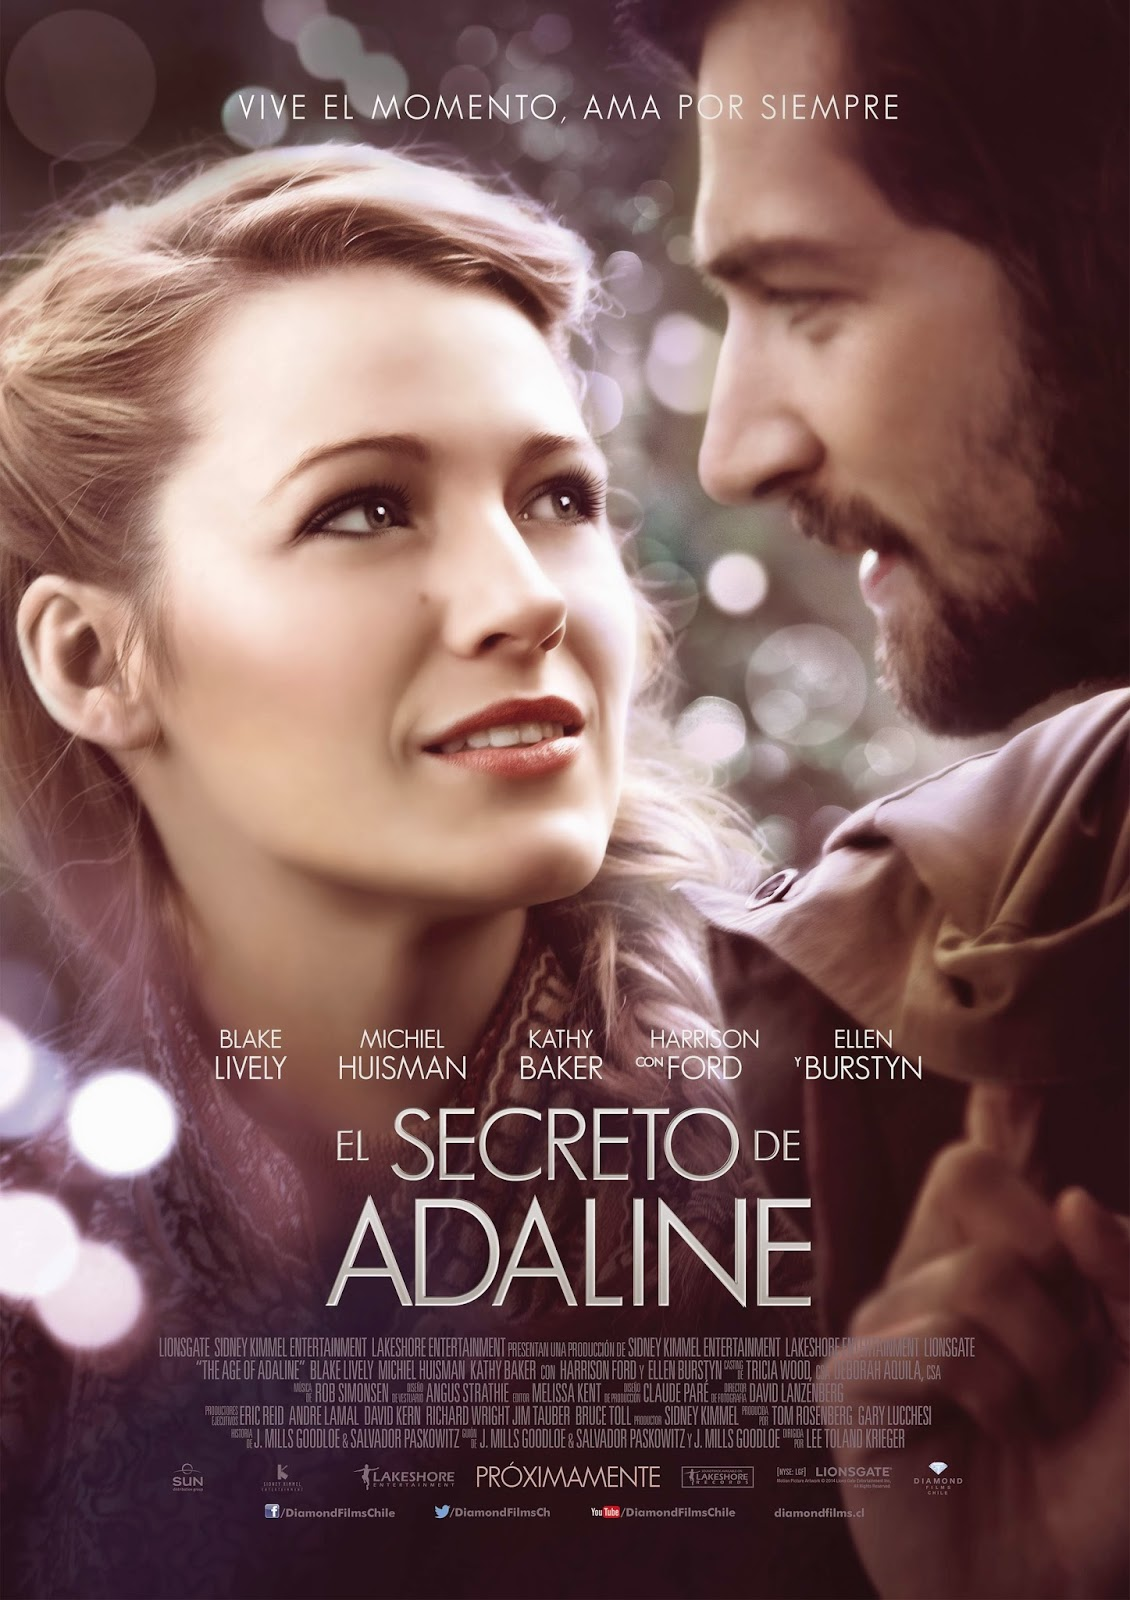 The Age Of Adaline (El Secreto De Adaline) (V.O.S) (2015)